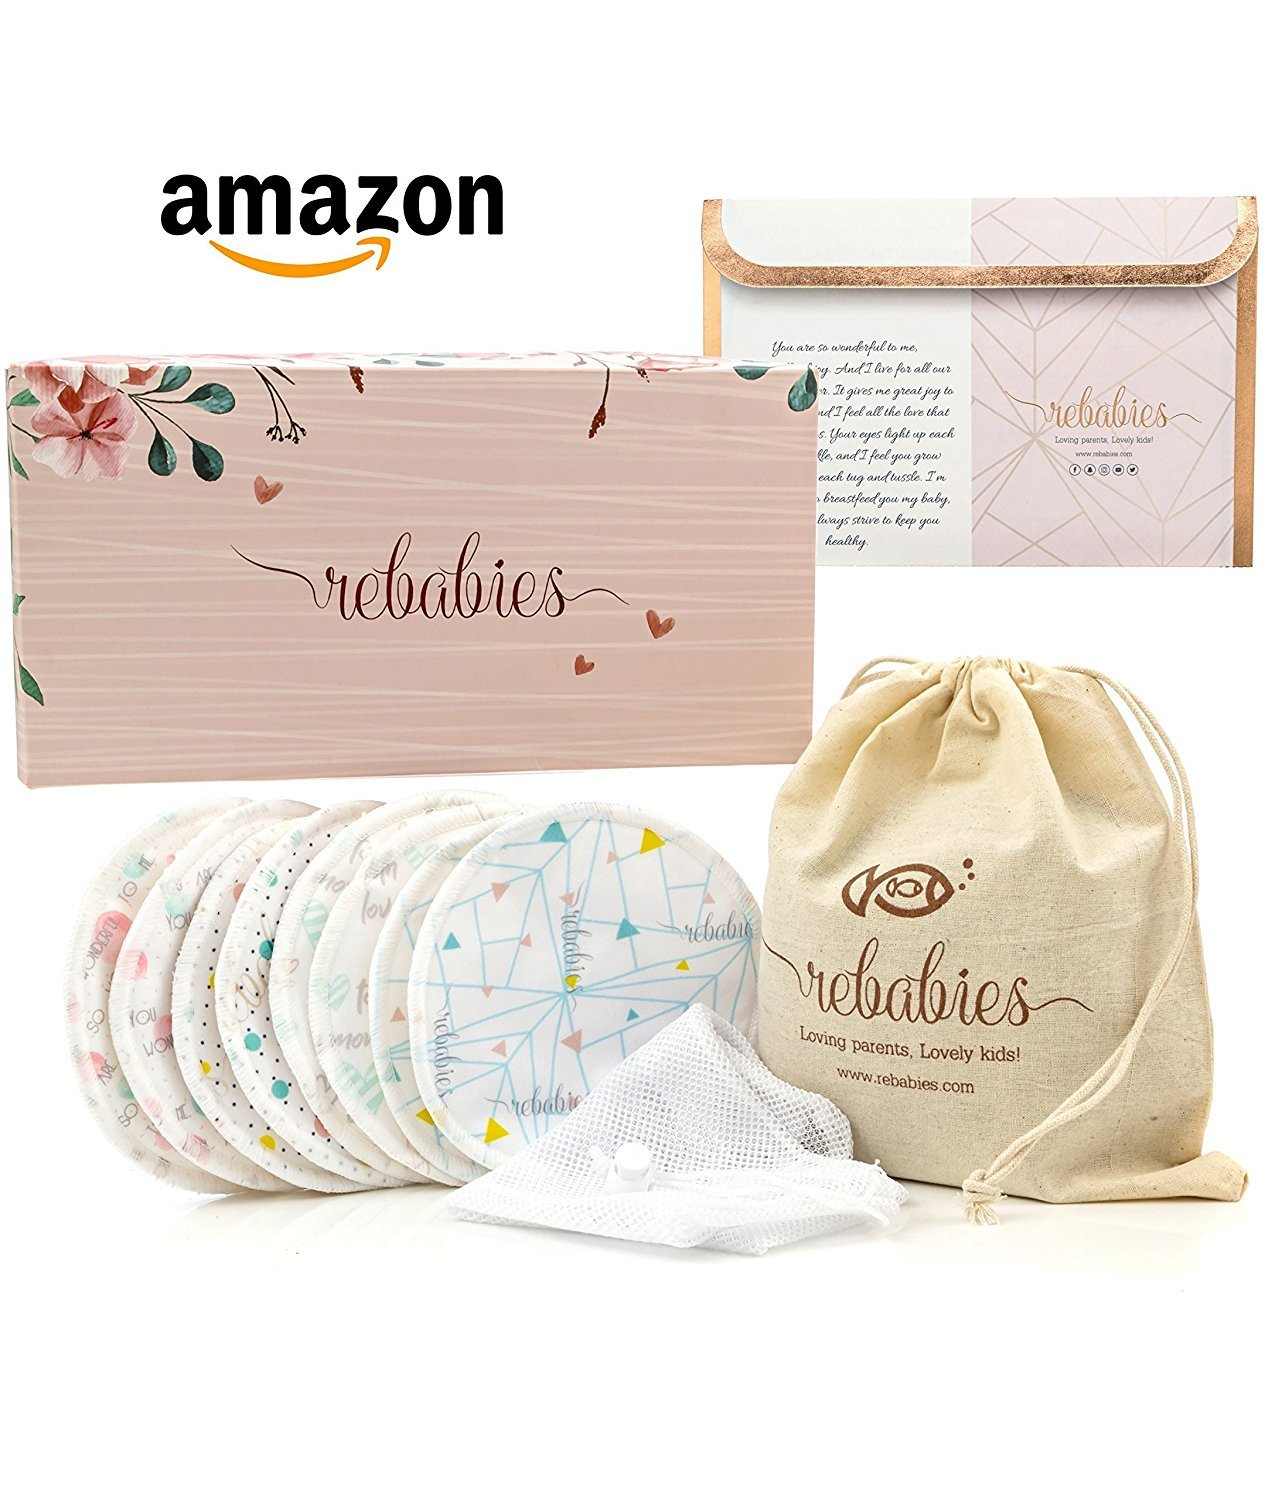 Best Nursing Pads for Breastfeeding Moms, Eco-Friendly Organic Bamboo No-Leak Bra Pads, Reusable, Washable, & Super Absorbent, Includes 4 Overnight & 4 Regular Pads, Awesome Baby Shower Gift (8 Pack) RD001